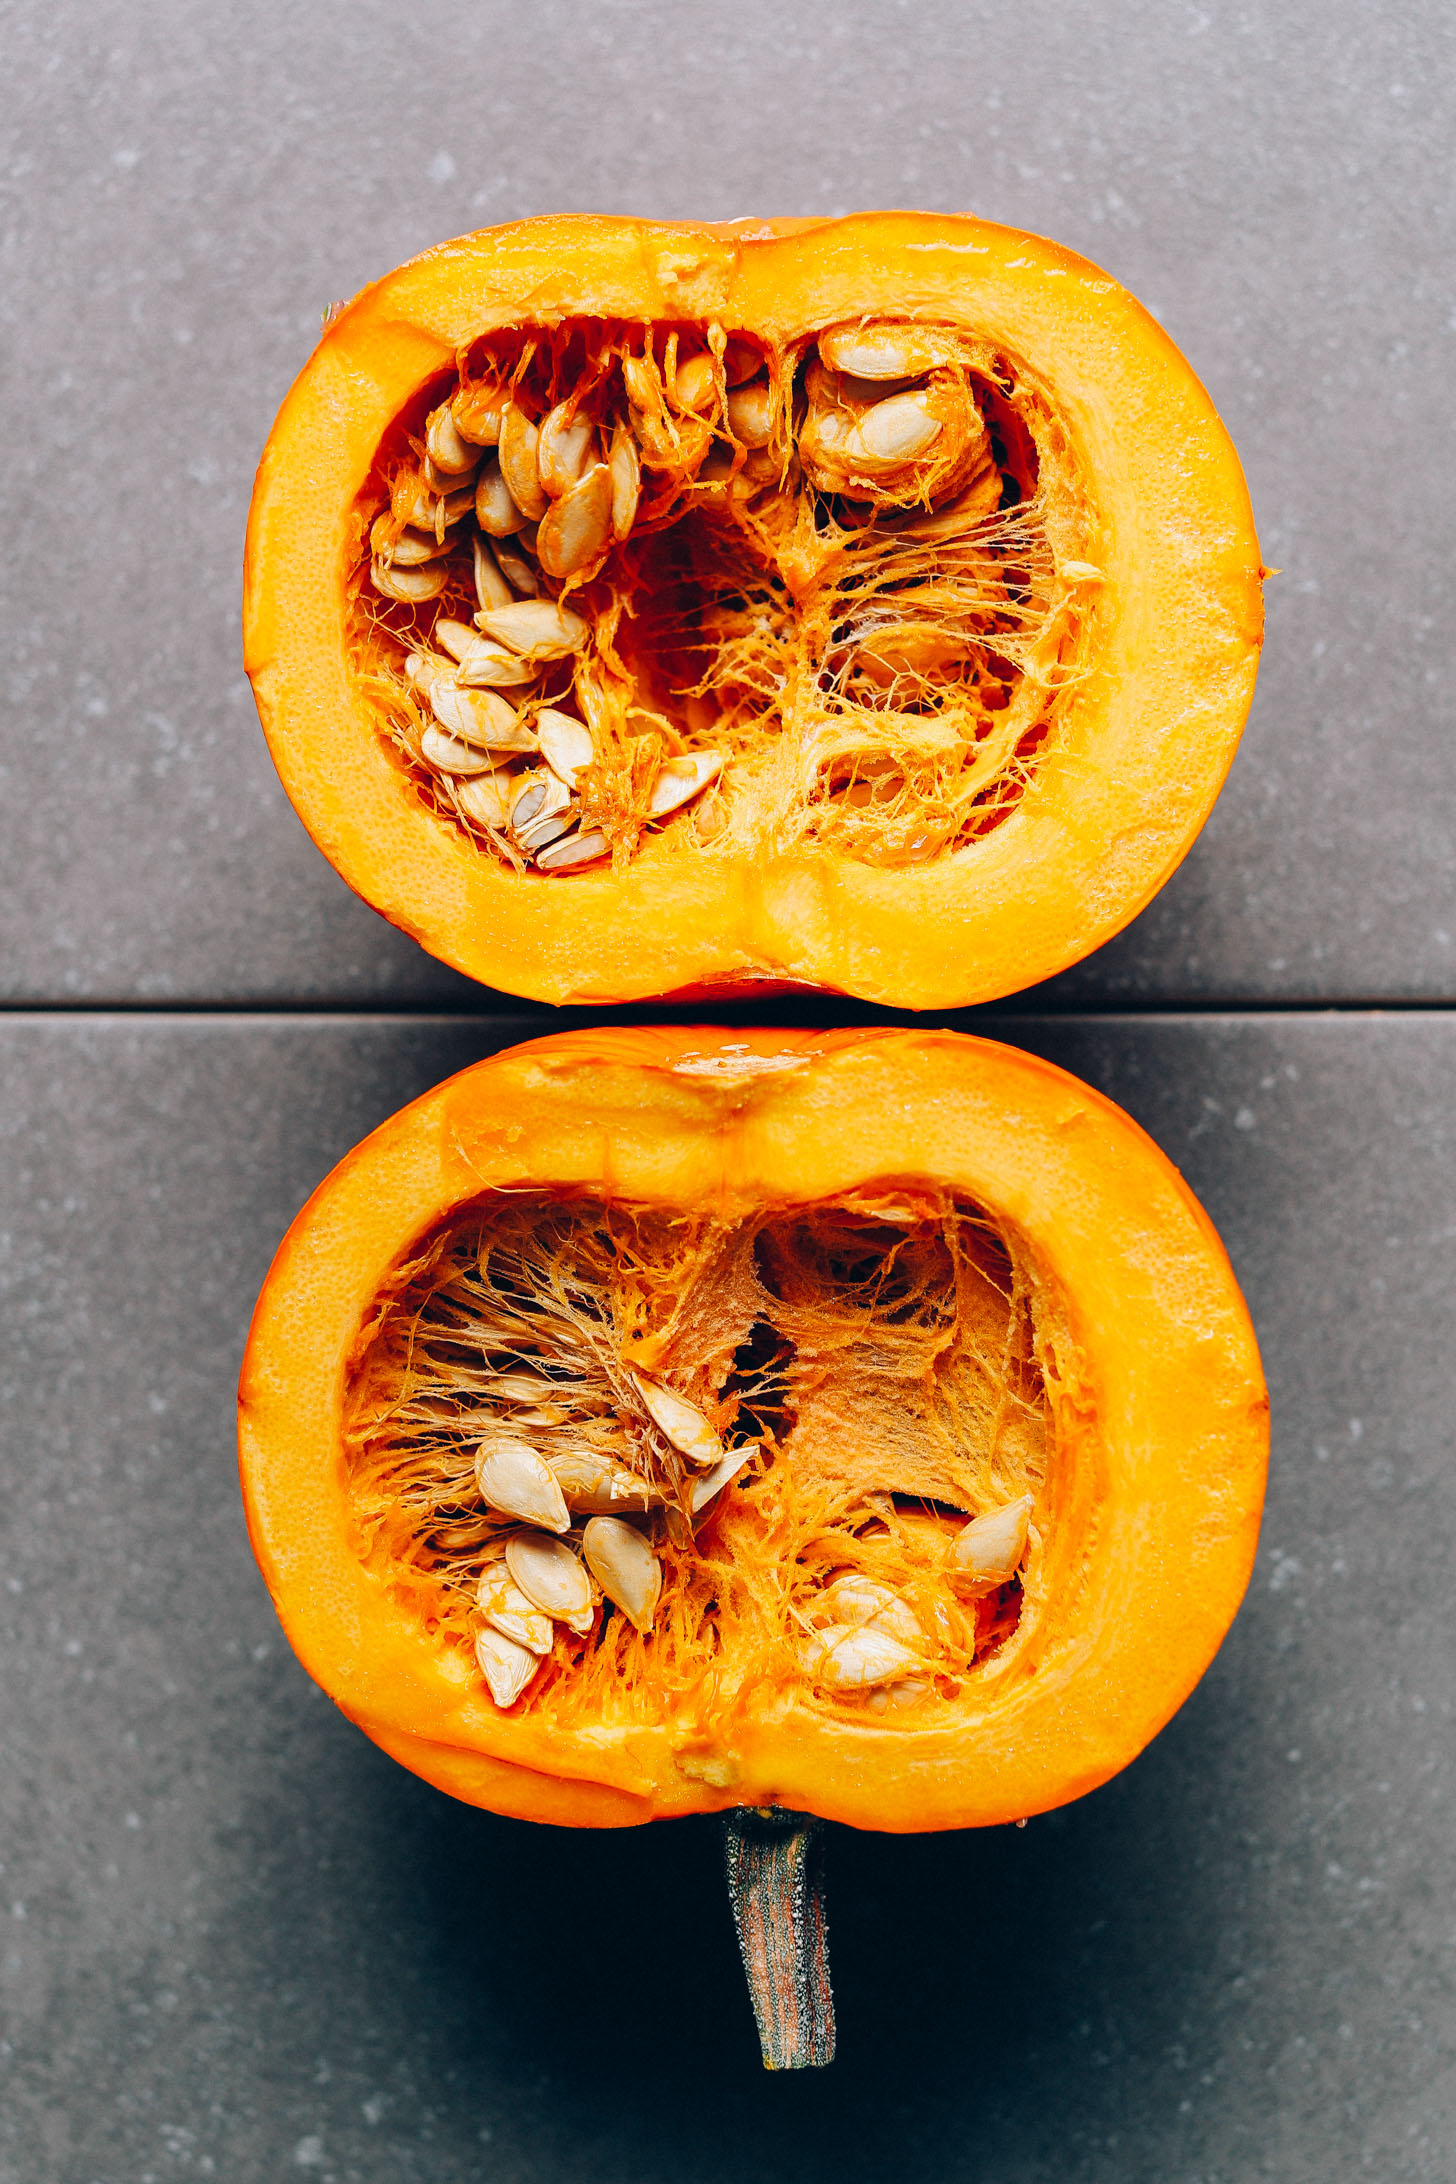 Pumpkin cut in half to show the seeds and rich orange color of the flesh